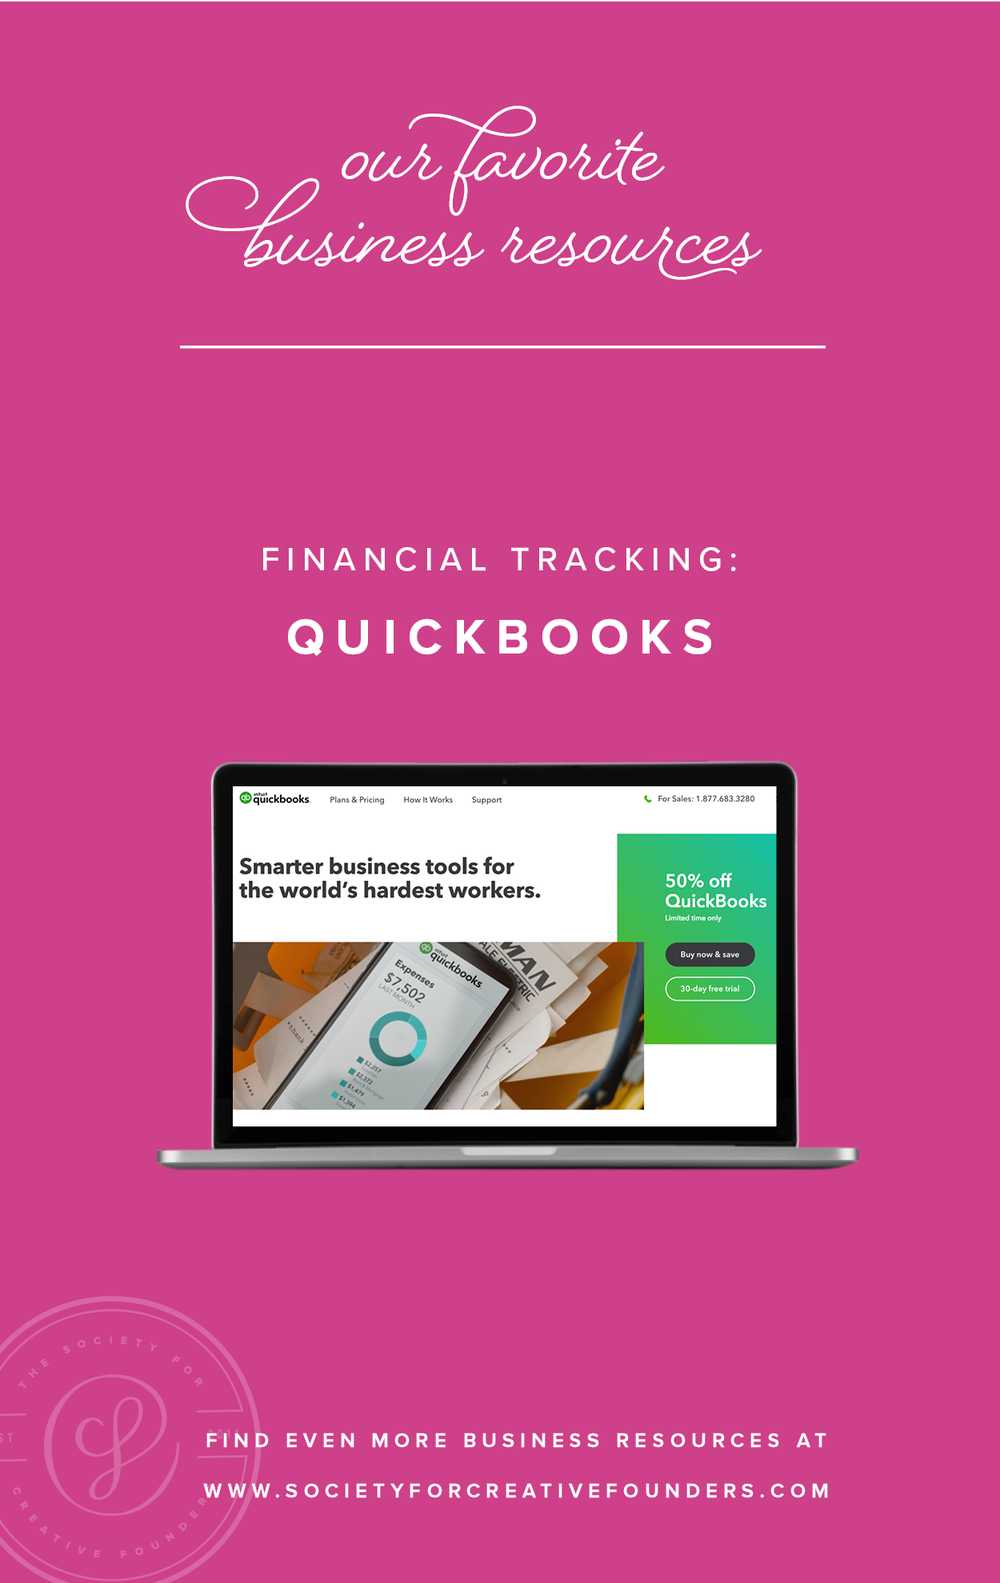 Financial Tracking with Quickbooks - The Contract Shop - Favorite Business Resources from Society for Creative Founders